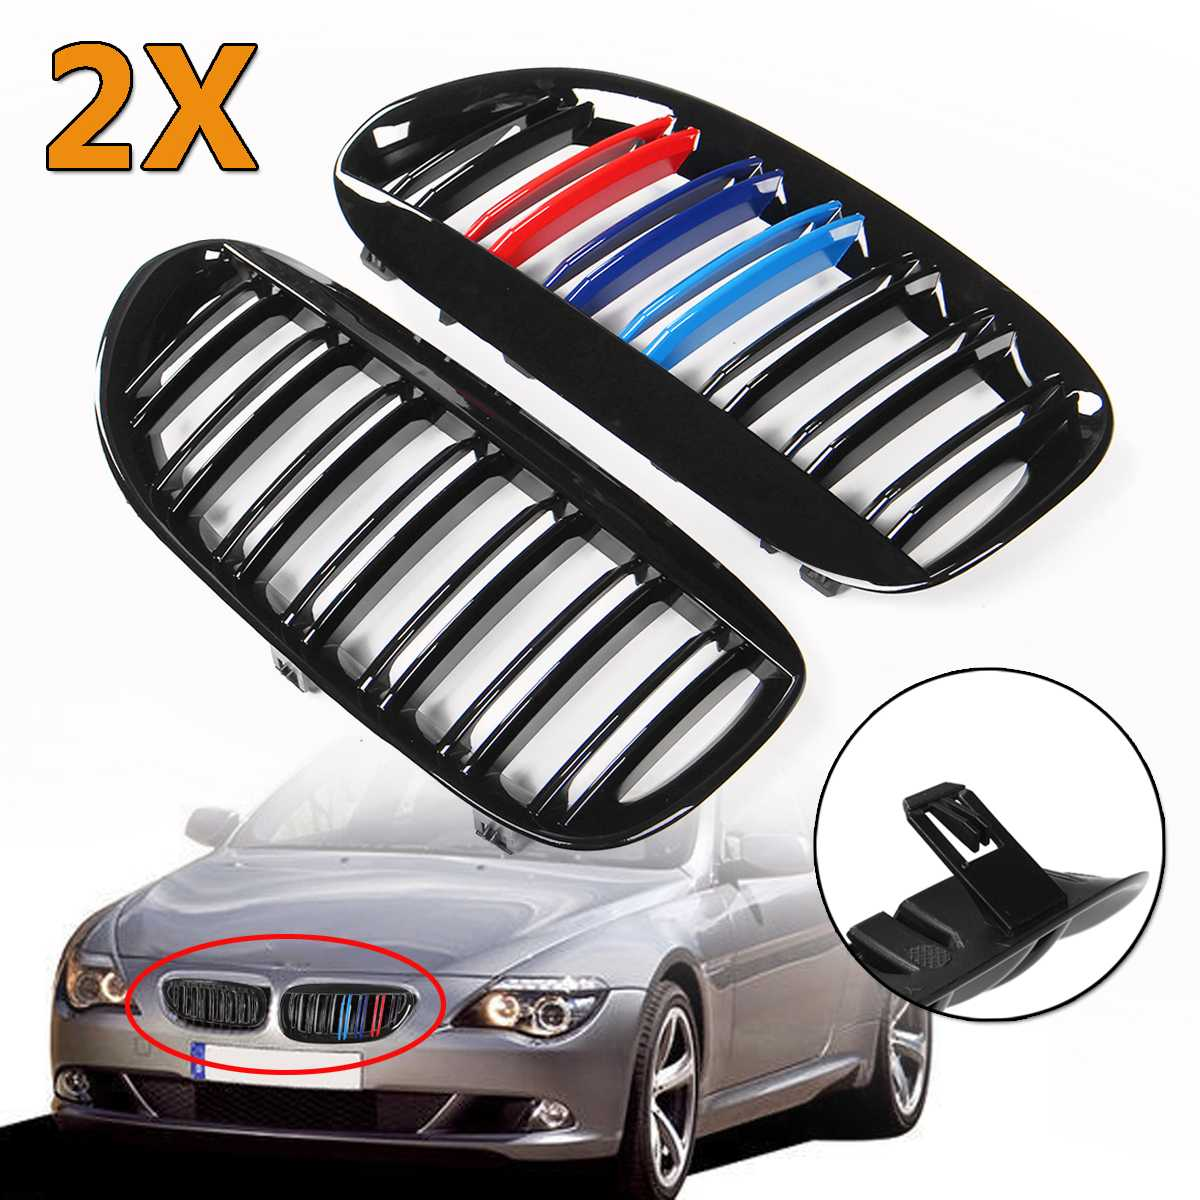 A Pair Gloss Black M-Color Double Line Car Front Bumper Kidney Grills Grille For BMW 6 Series E63 E64 Coupe 2004-2009